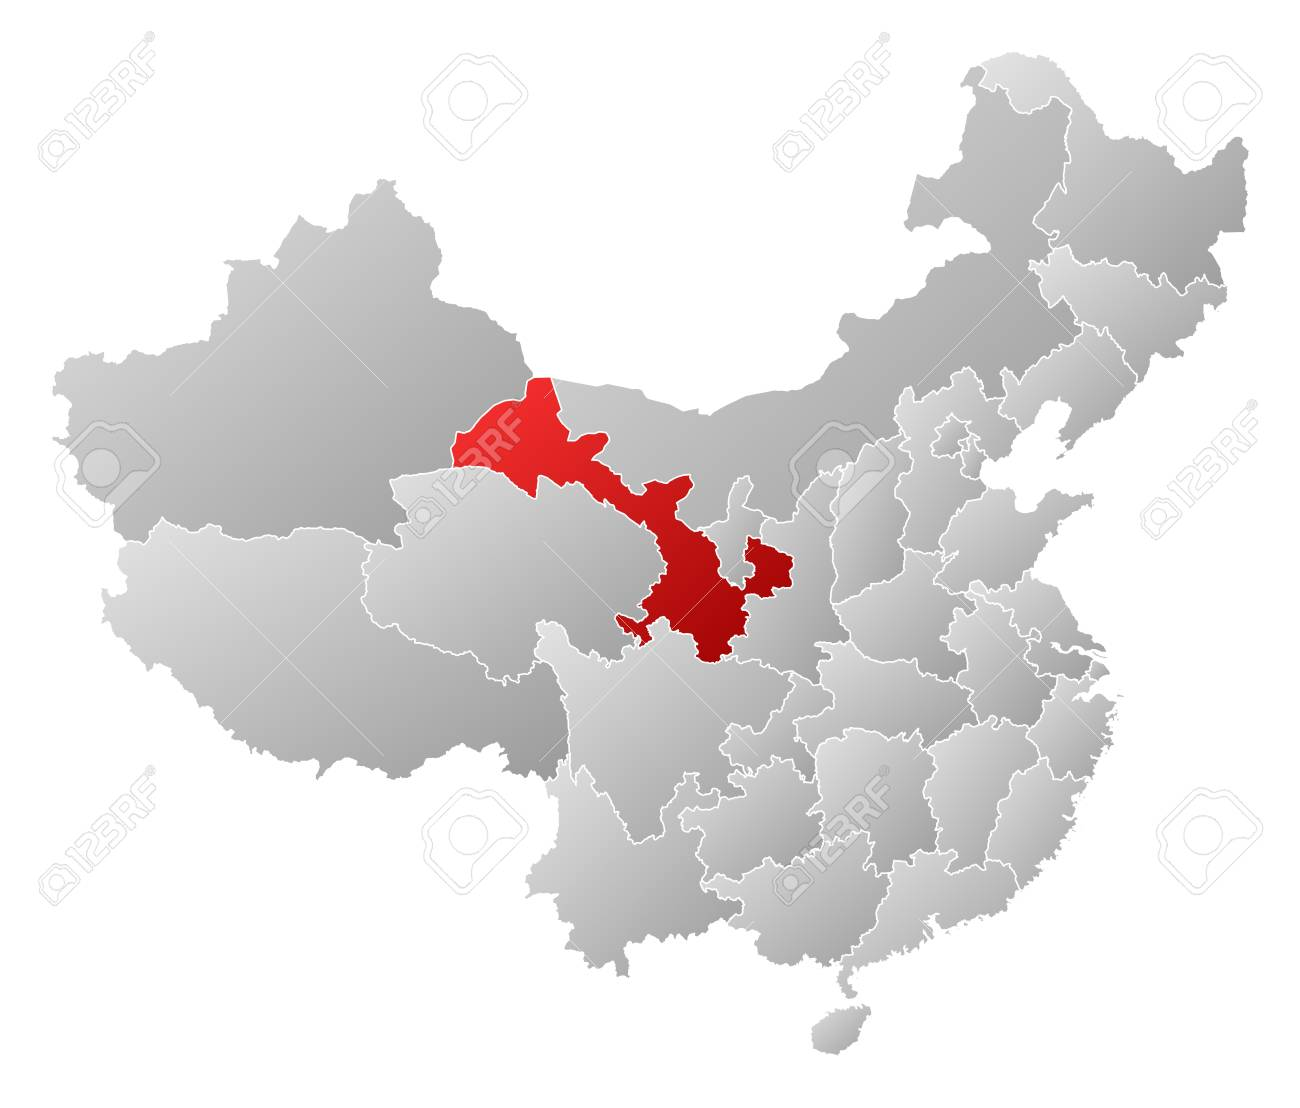 Gansu China Map.Political Map Of China With The Several Provinces Where Gansu